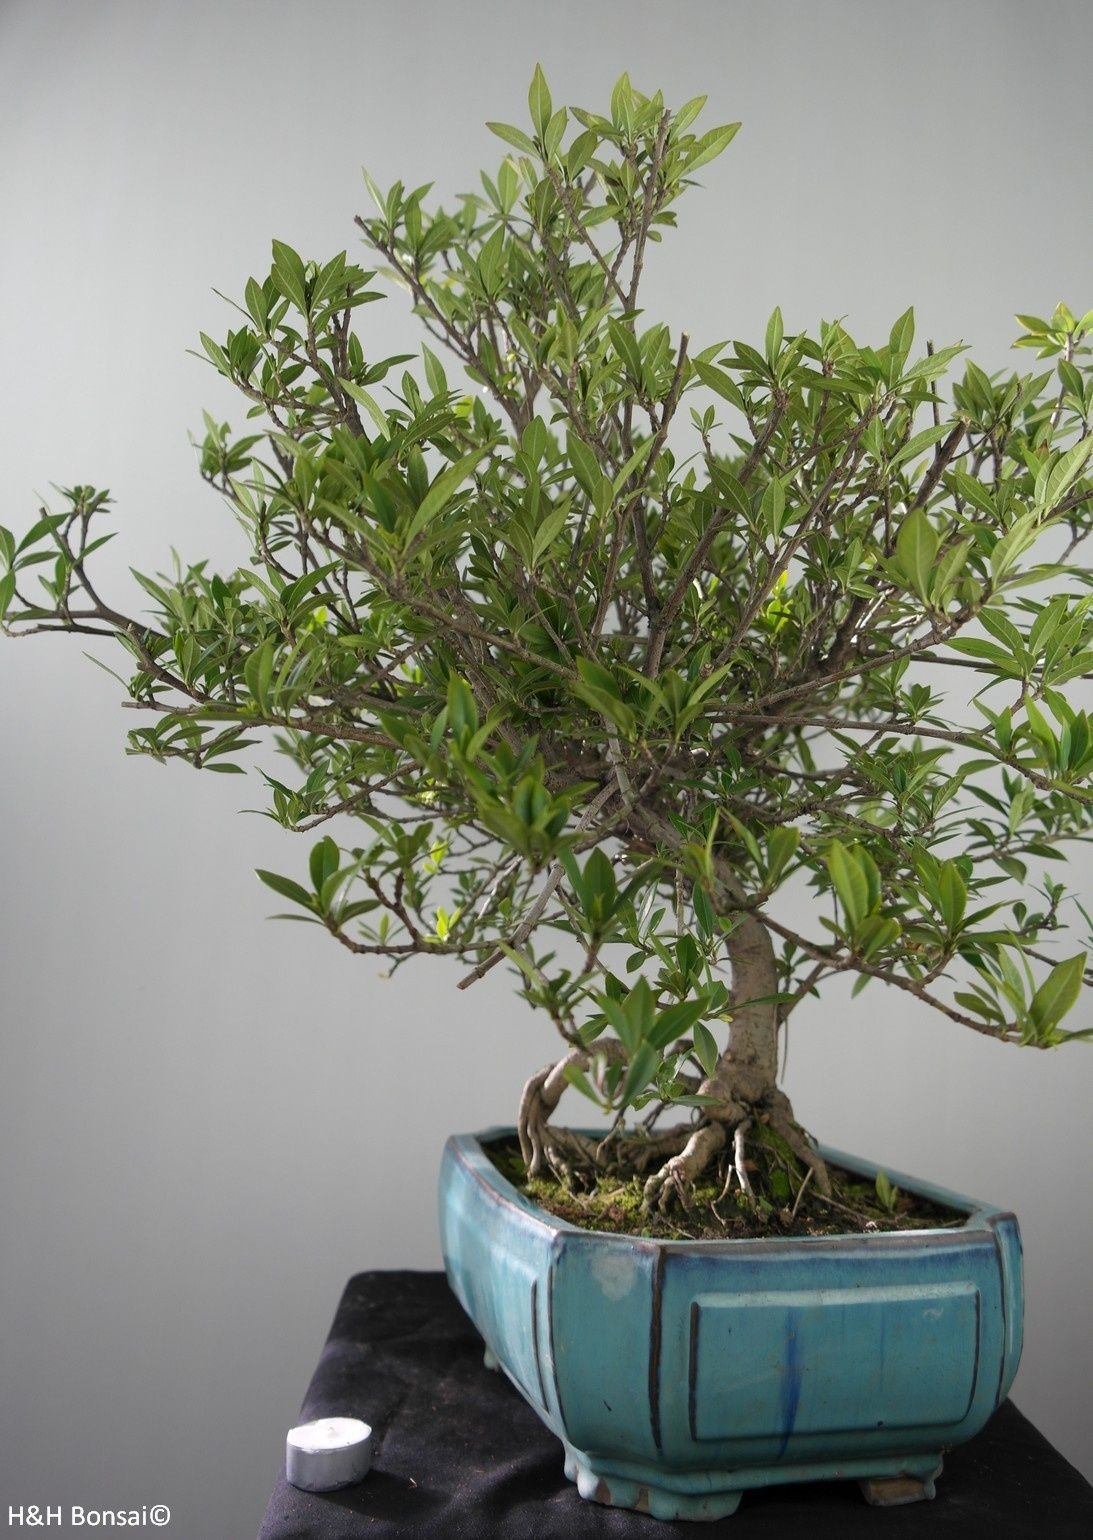 Bonsai Gardenia jasminoides, no. 7751